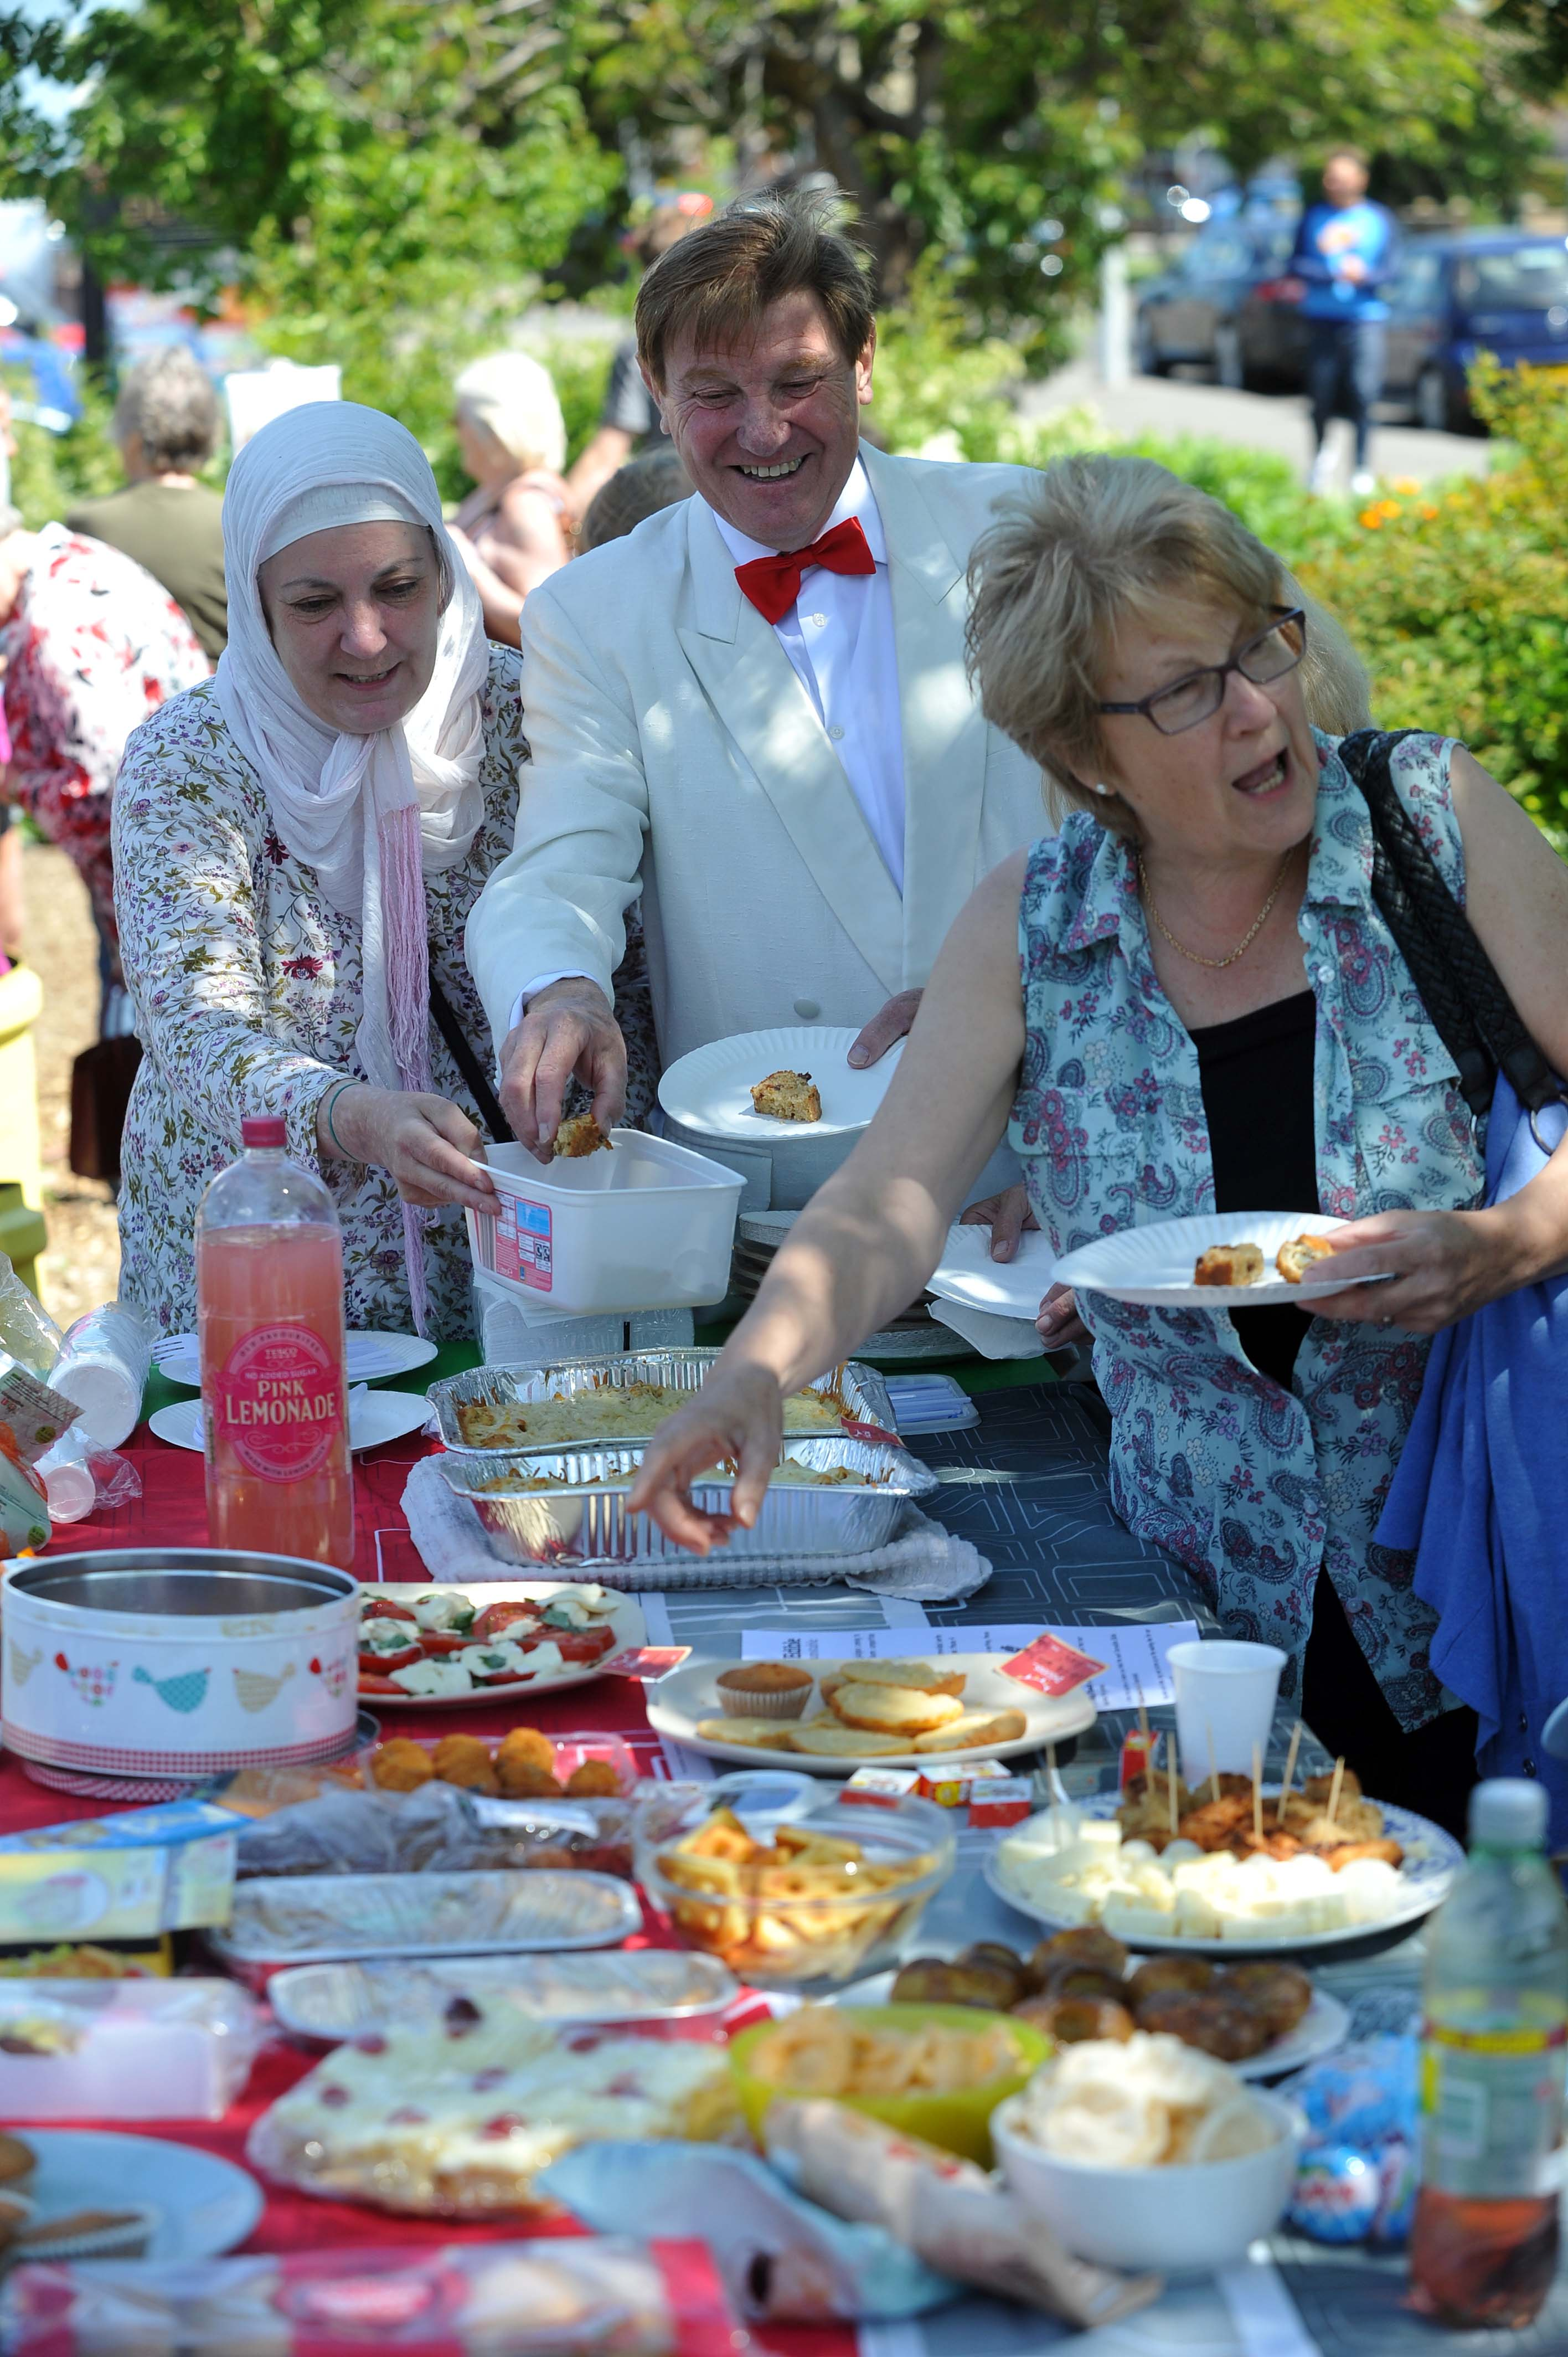 6.4 million people take part in The Big Lunch